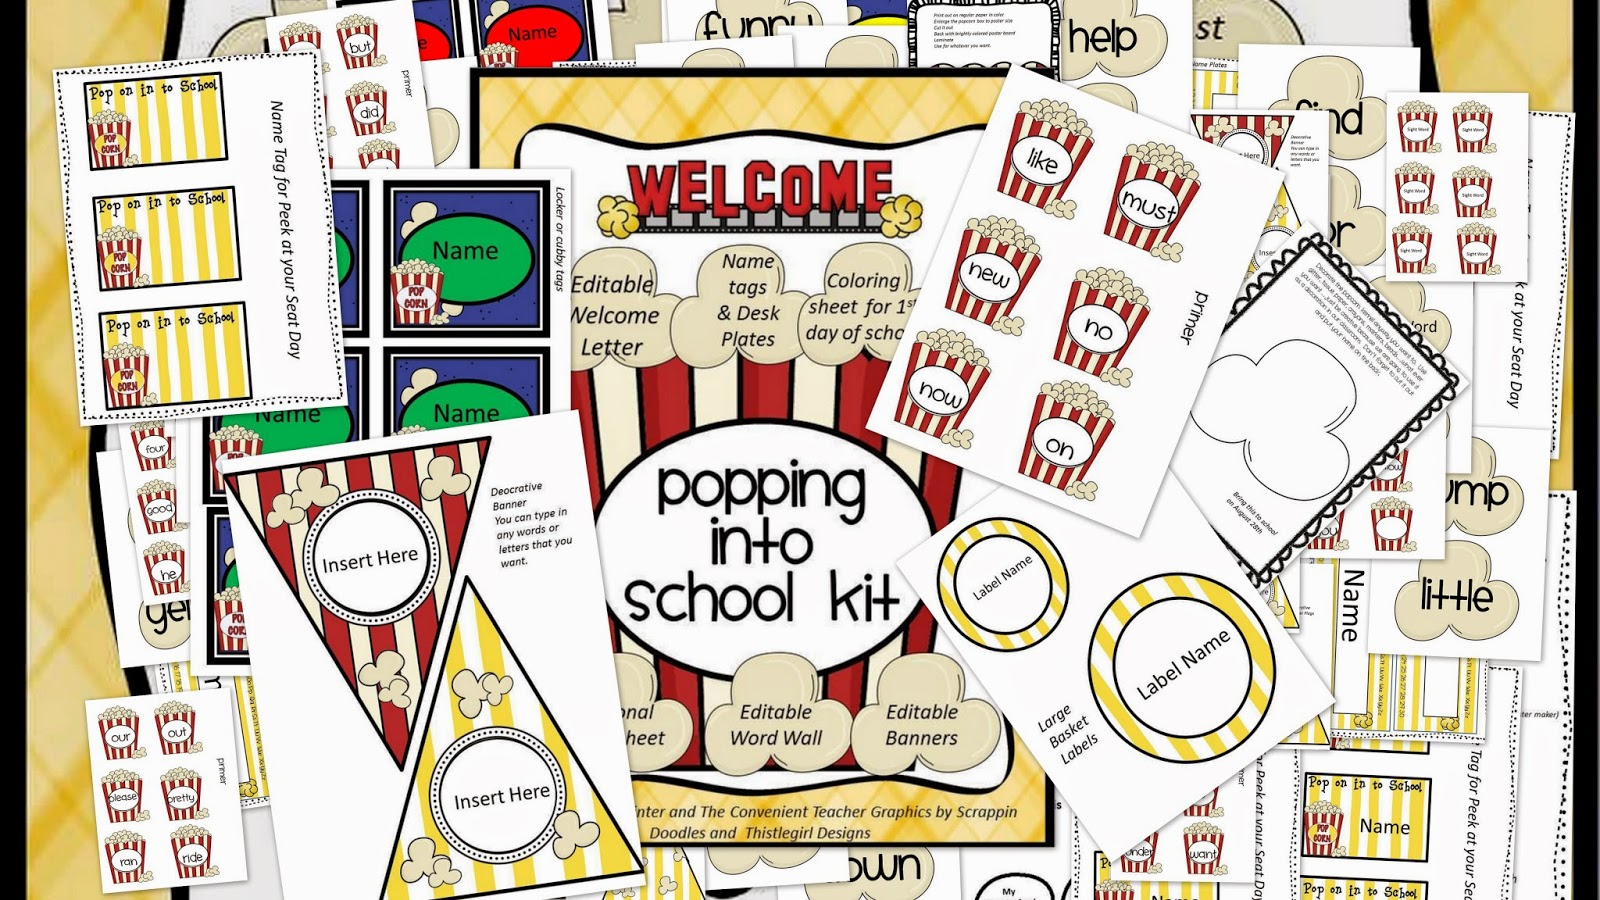 http://www.teacherspayteachers.com/Product/Editable-PopCorn-Welcome-Kit-277144